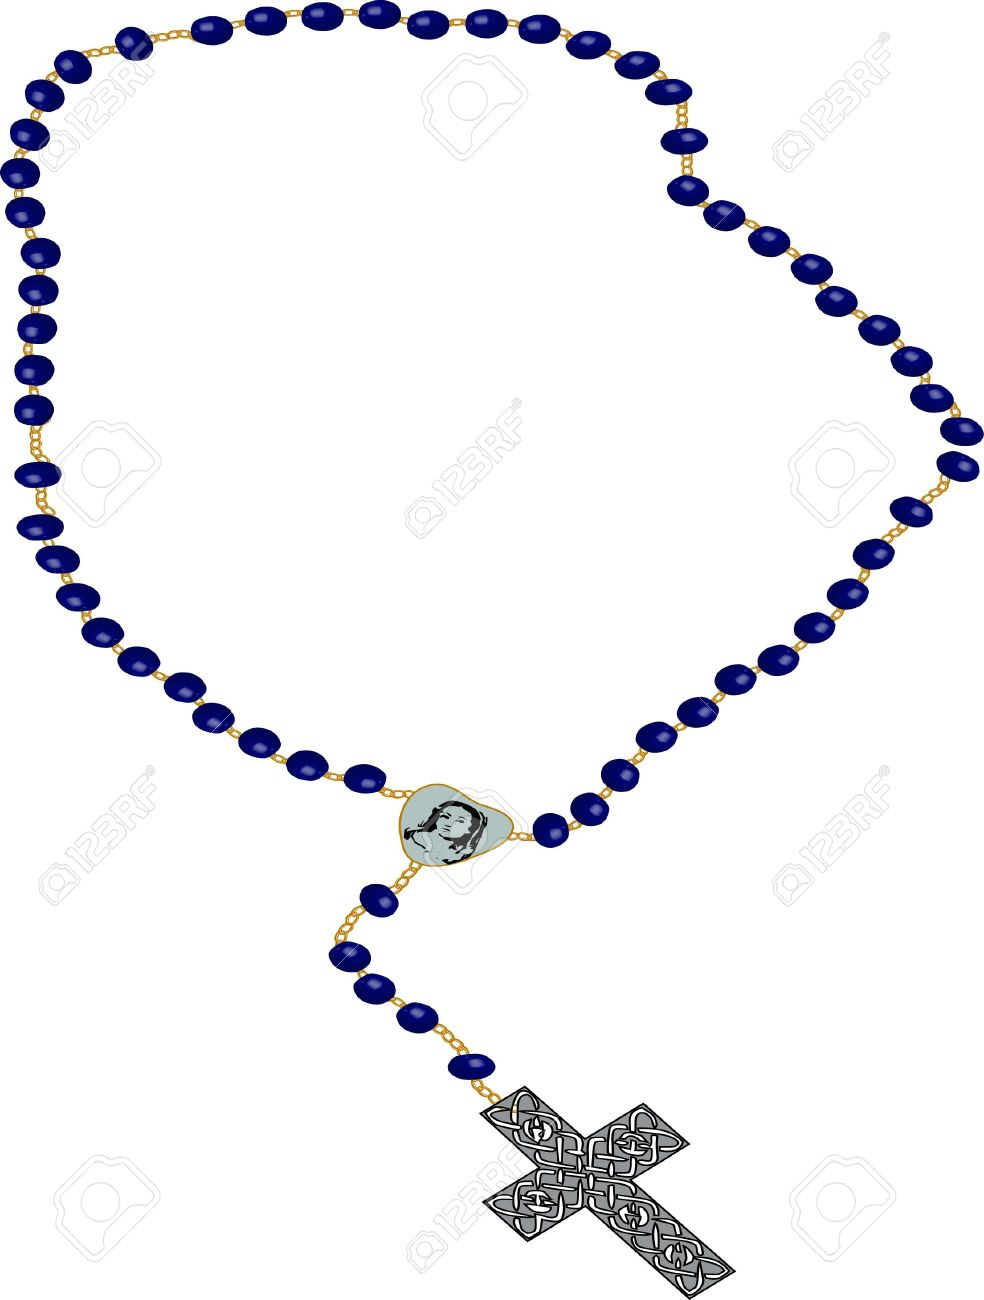 598 Rosary free clipart.